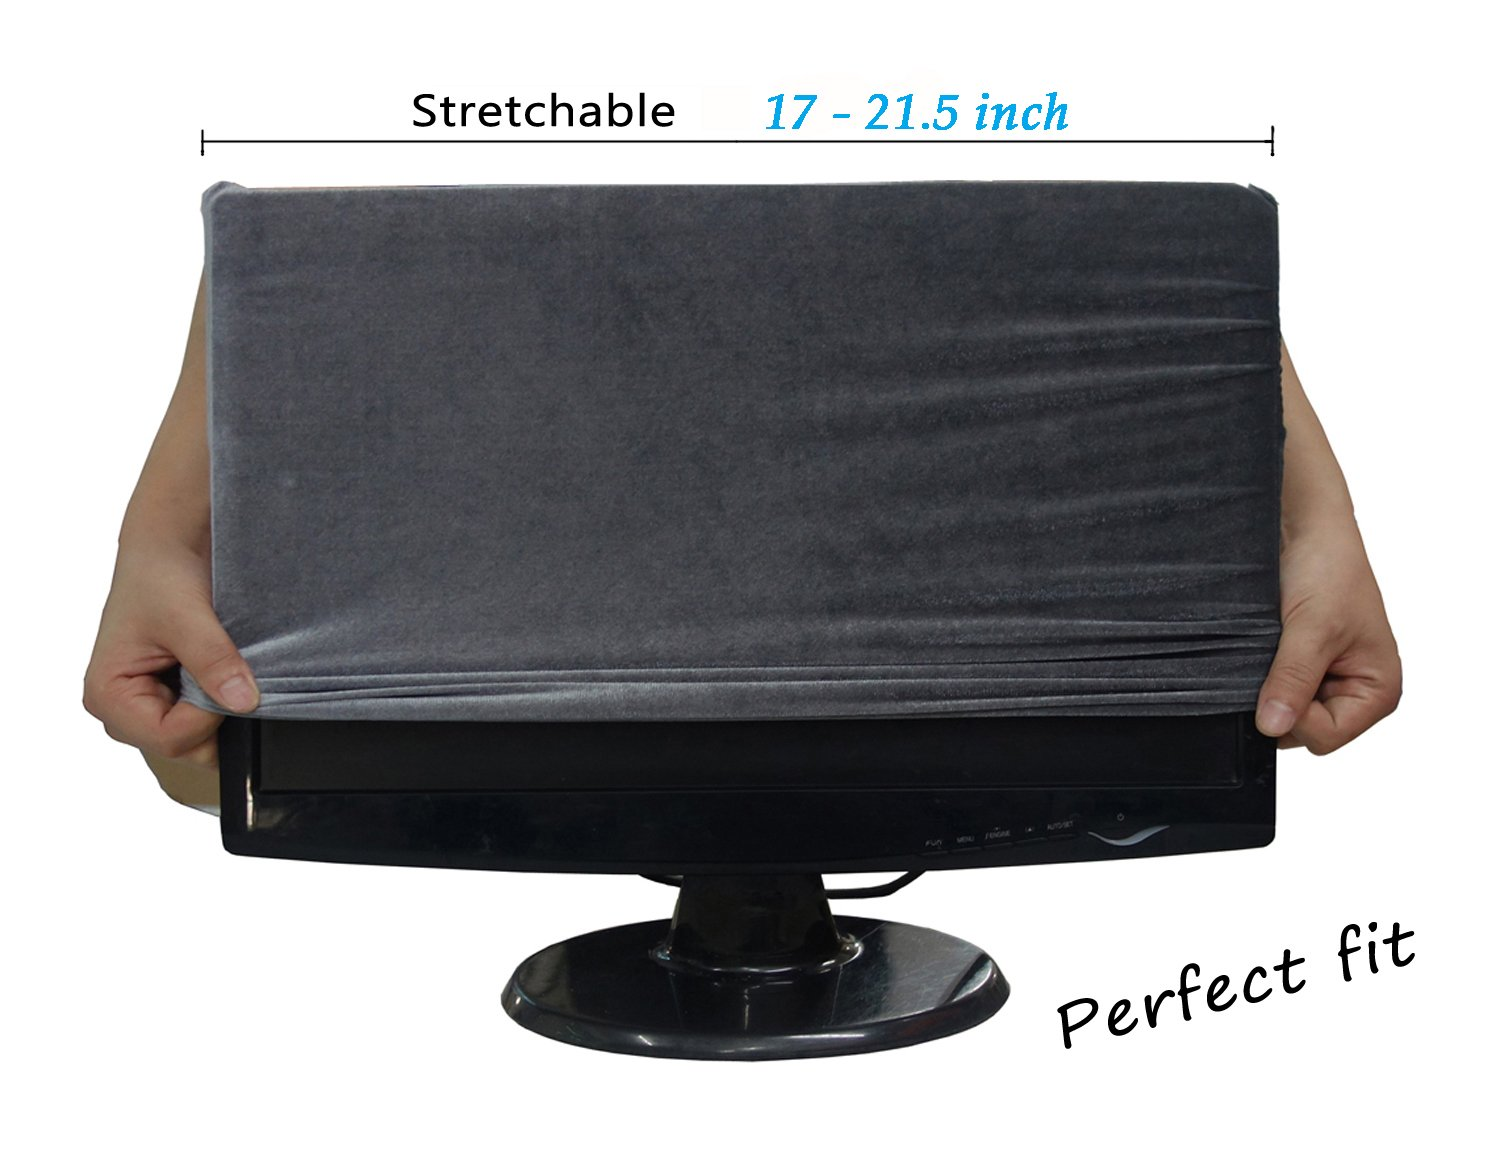 WOMACO Stretch Monitor Cover Protector, Monitor + Keyboard + Mouse Desktop 3 Pieces Set Dustproof Cover by WOMACO (Image #2)